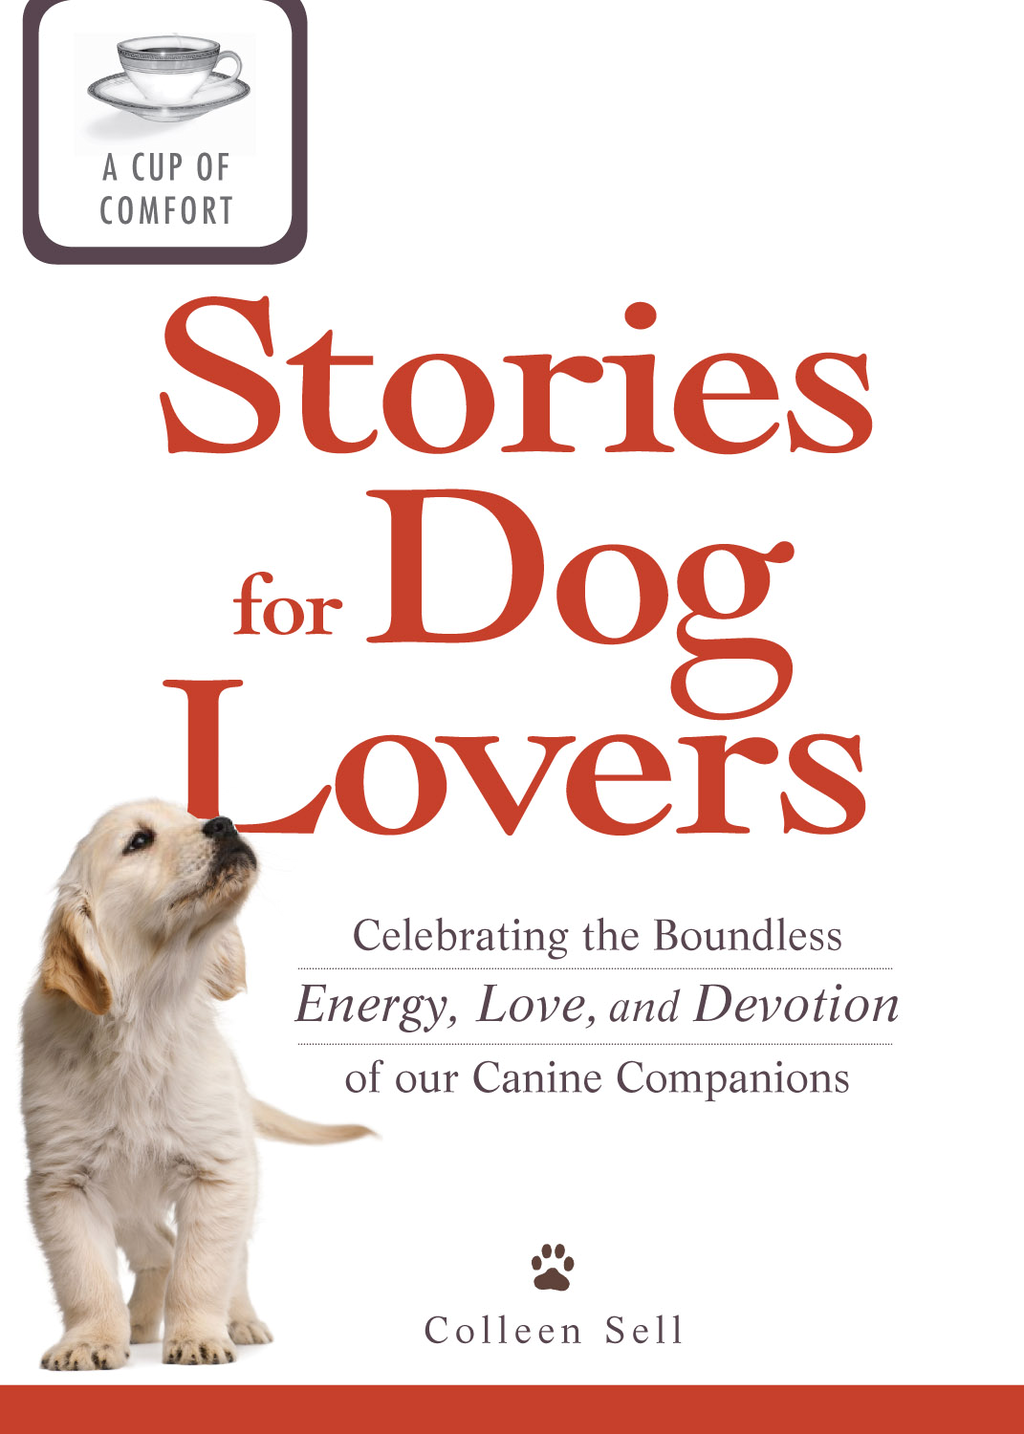 A Cup of Comfort Stories for Dog Lovers: Celebrating the boundless energy,  love,  and devotion of our canine companions